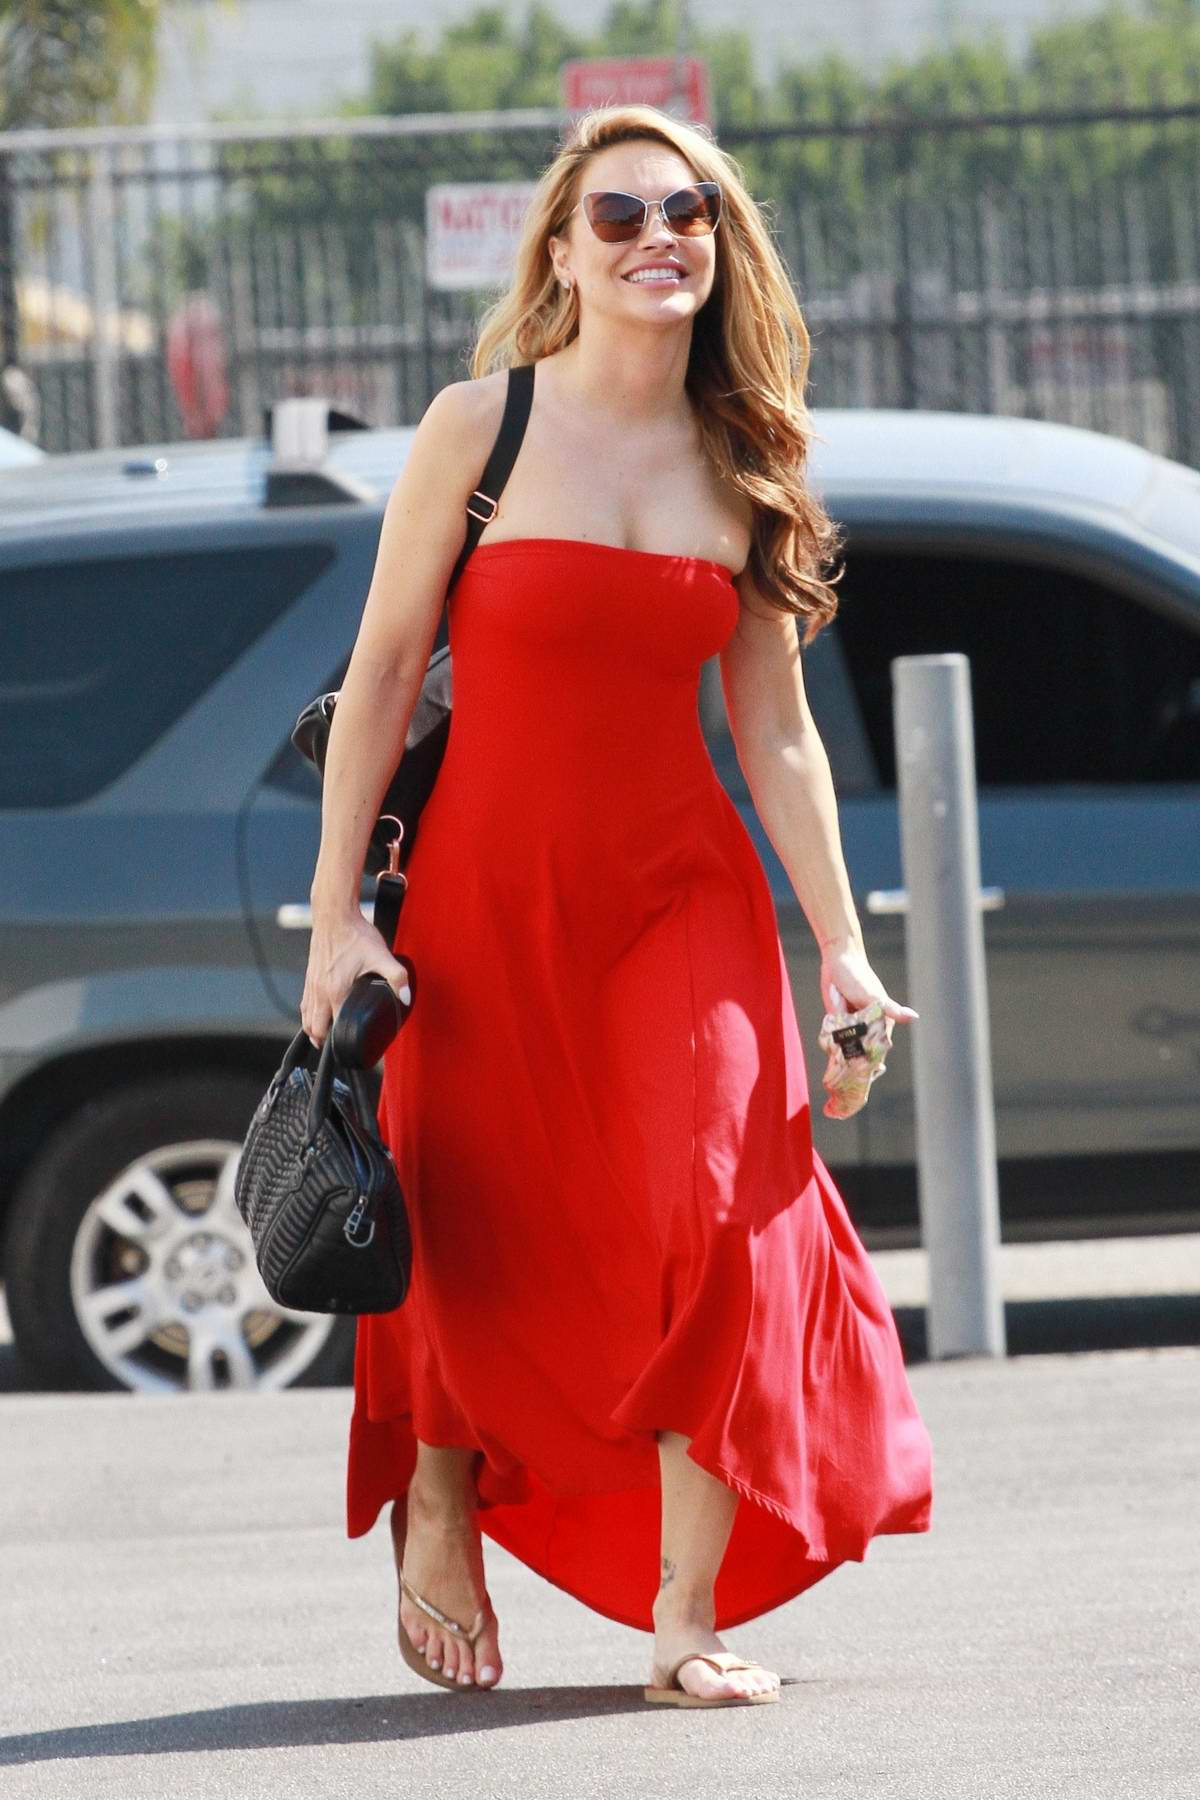 Chrishell Stause looks striking in a red dress as she heads to the DWTS studio in Los Angeles